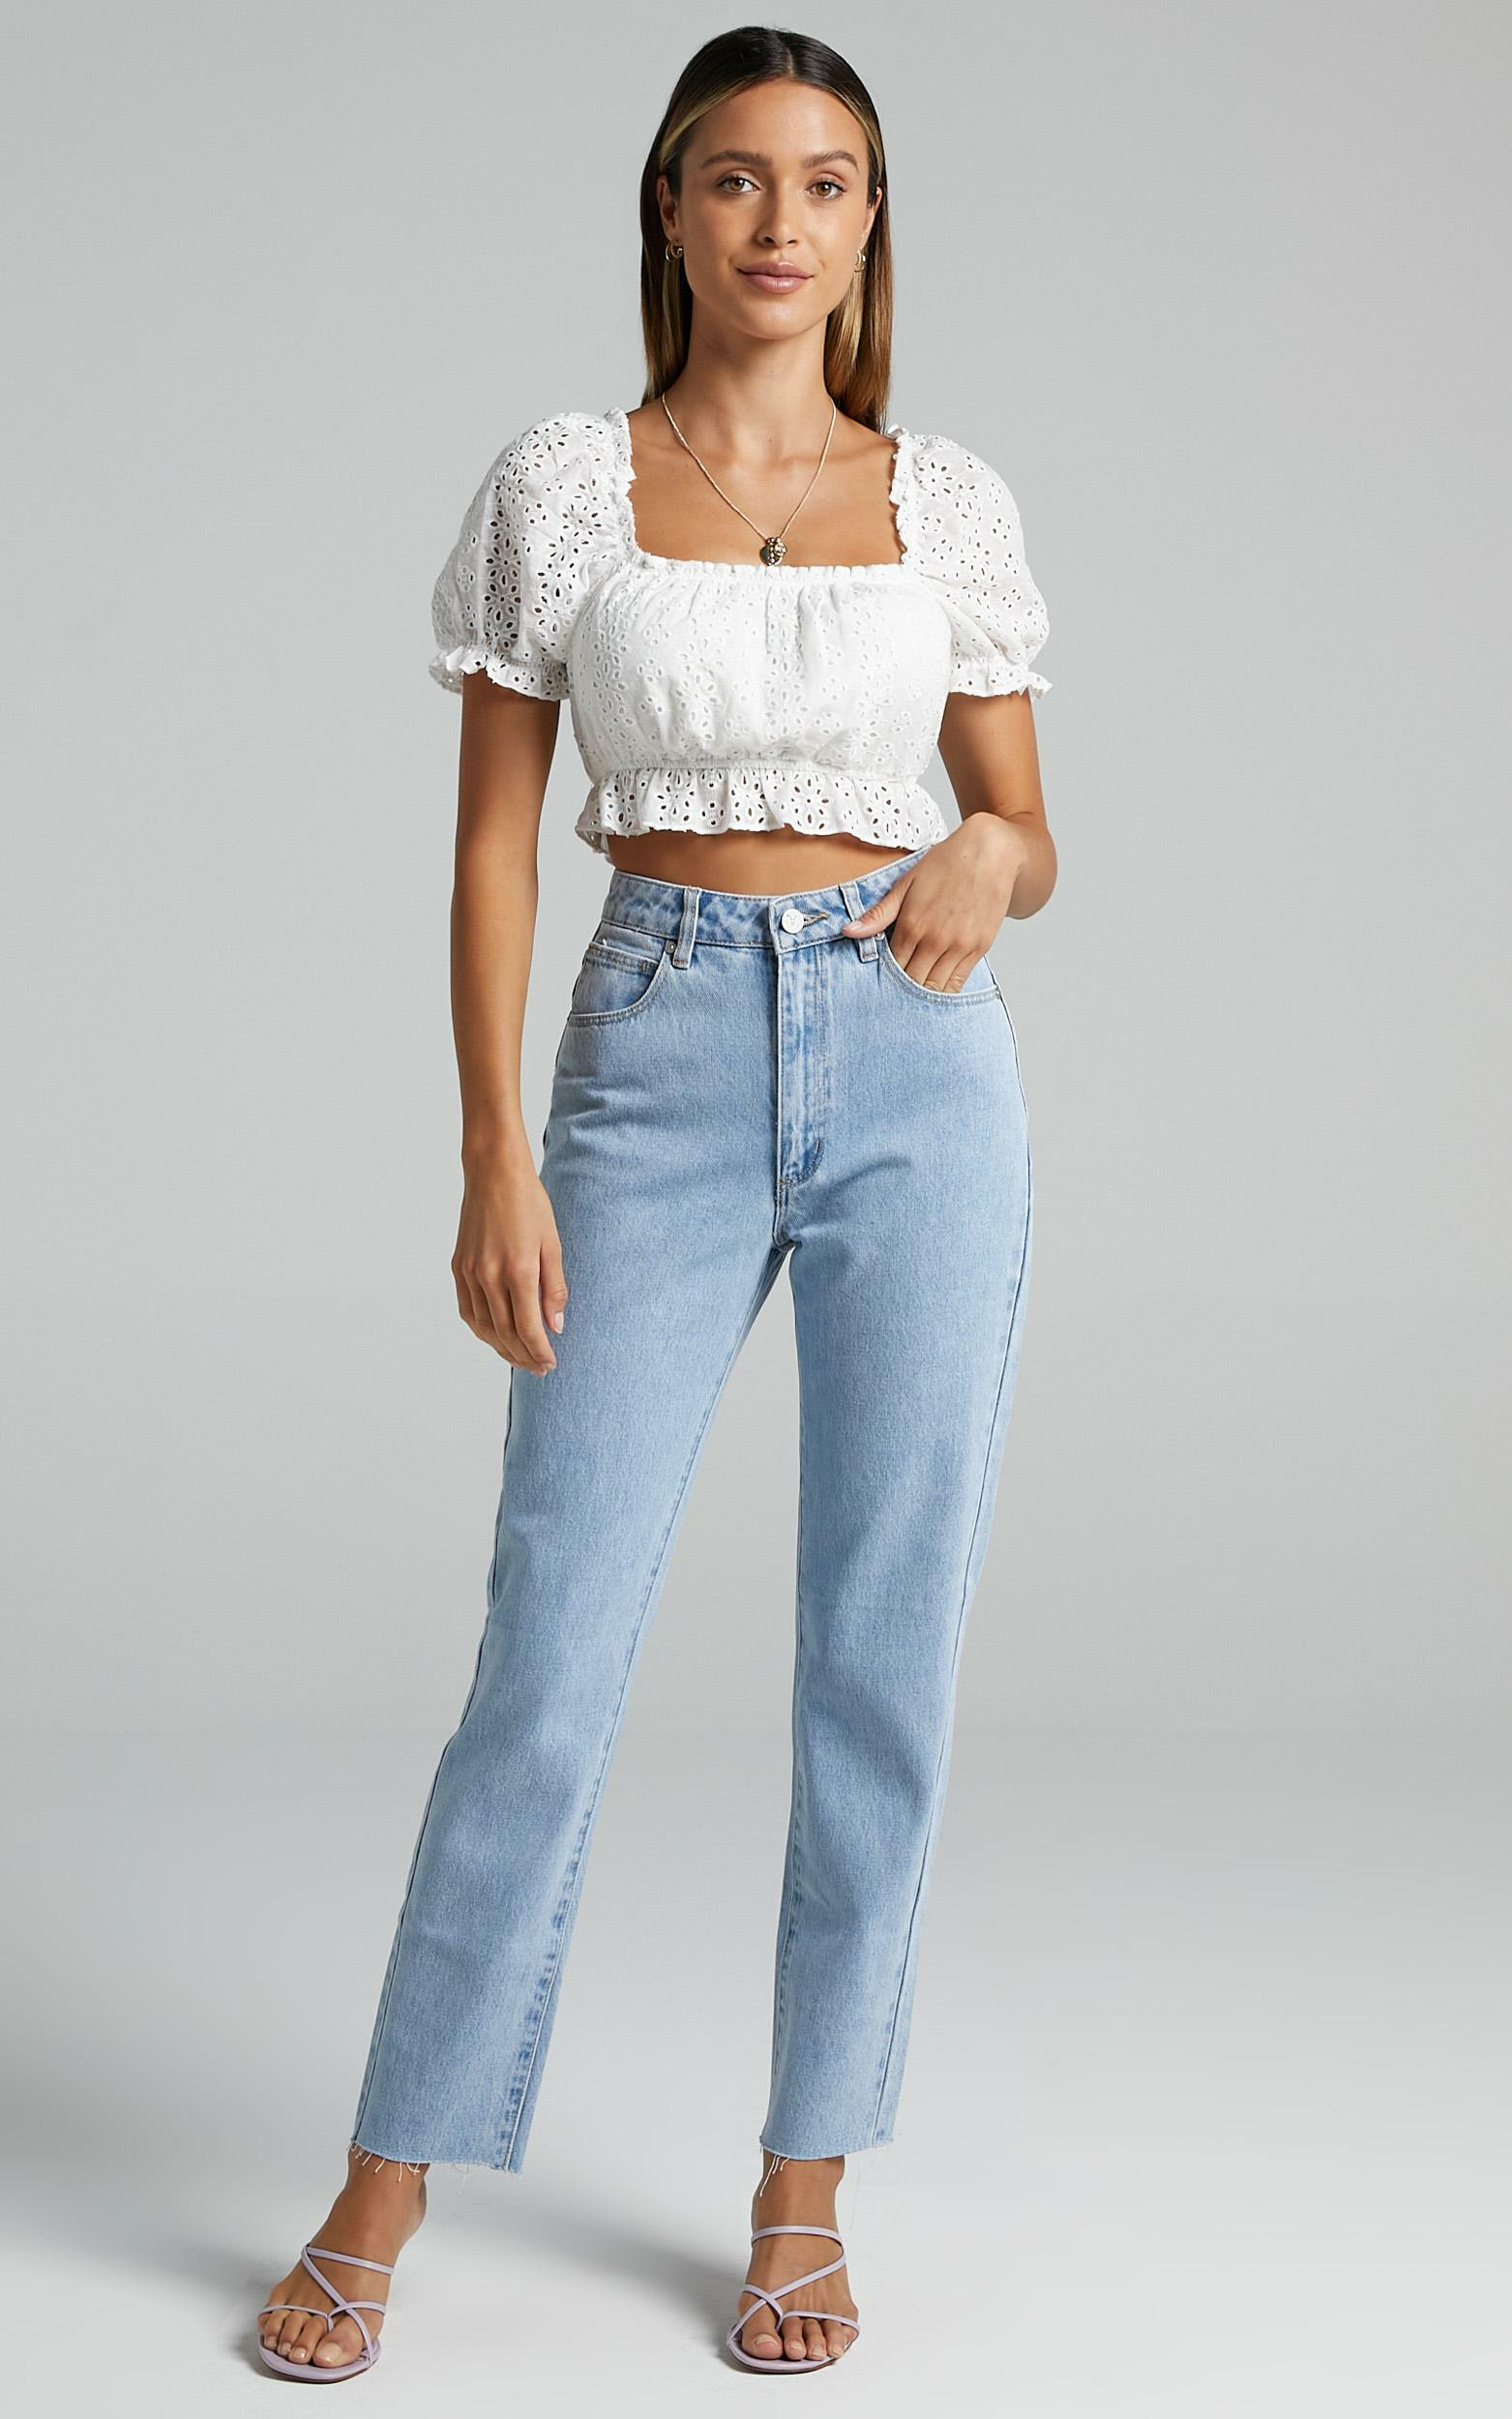 Abrand - A '94 High Slim Jeans in Walk Away - 16 (XXL), BLU3, hi-res image number null